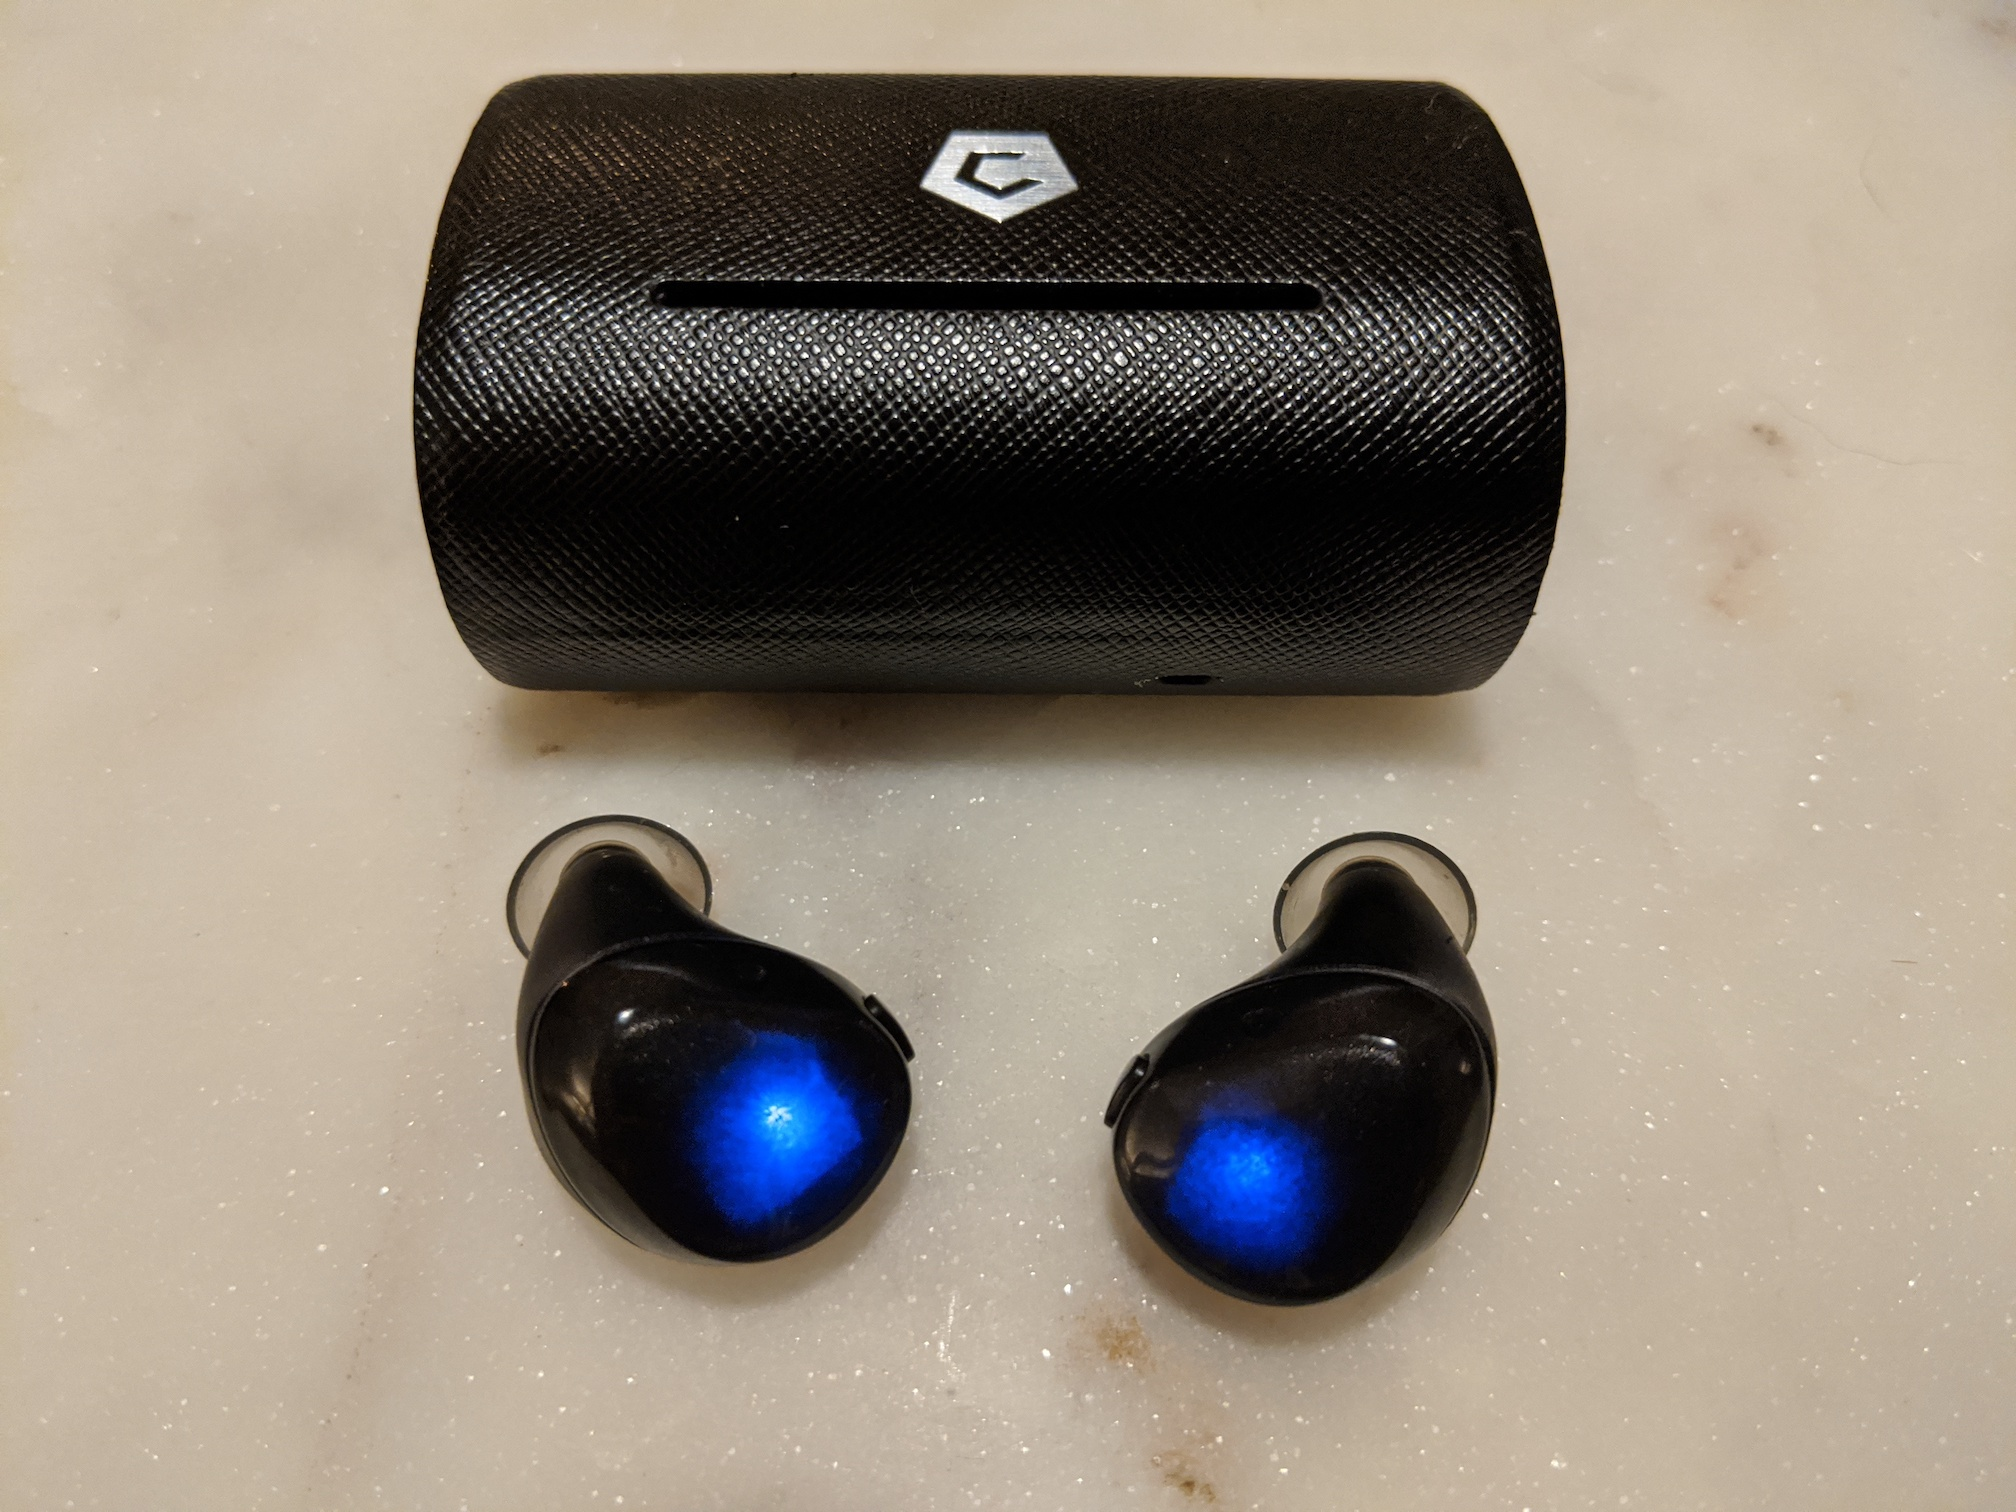 Cobble Pro Earbuds